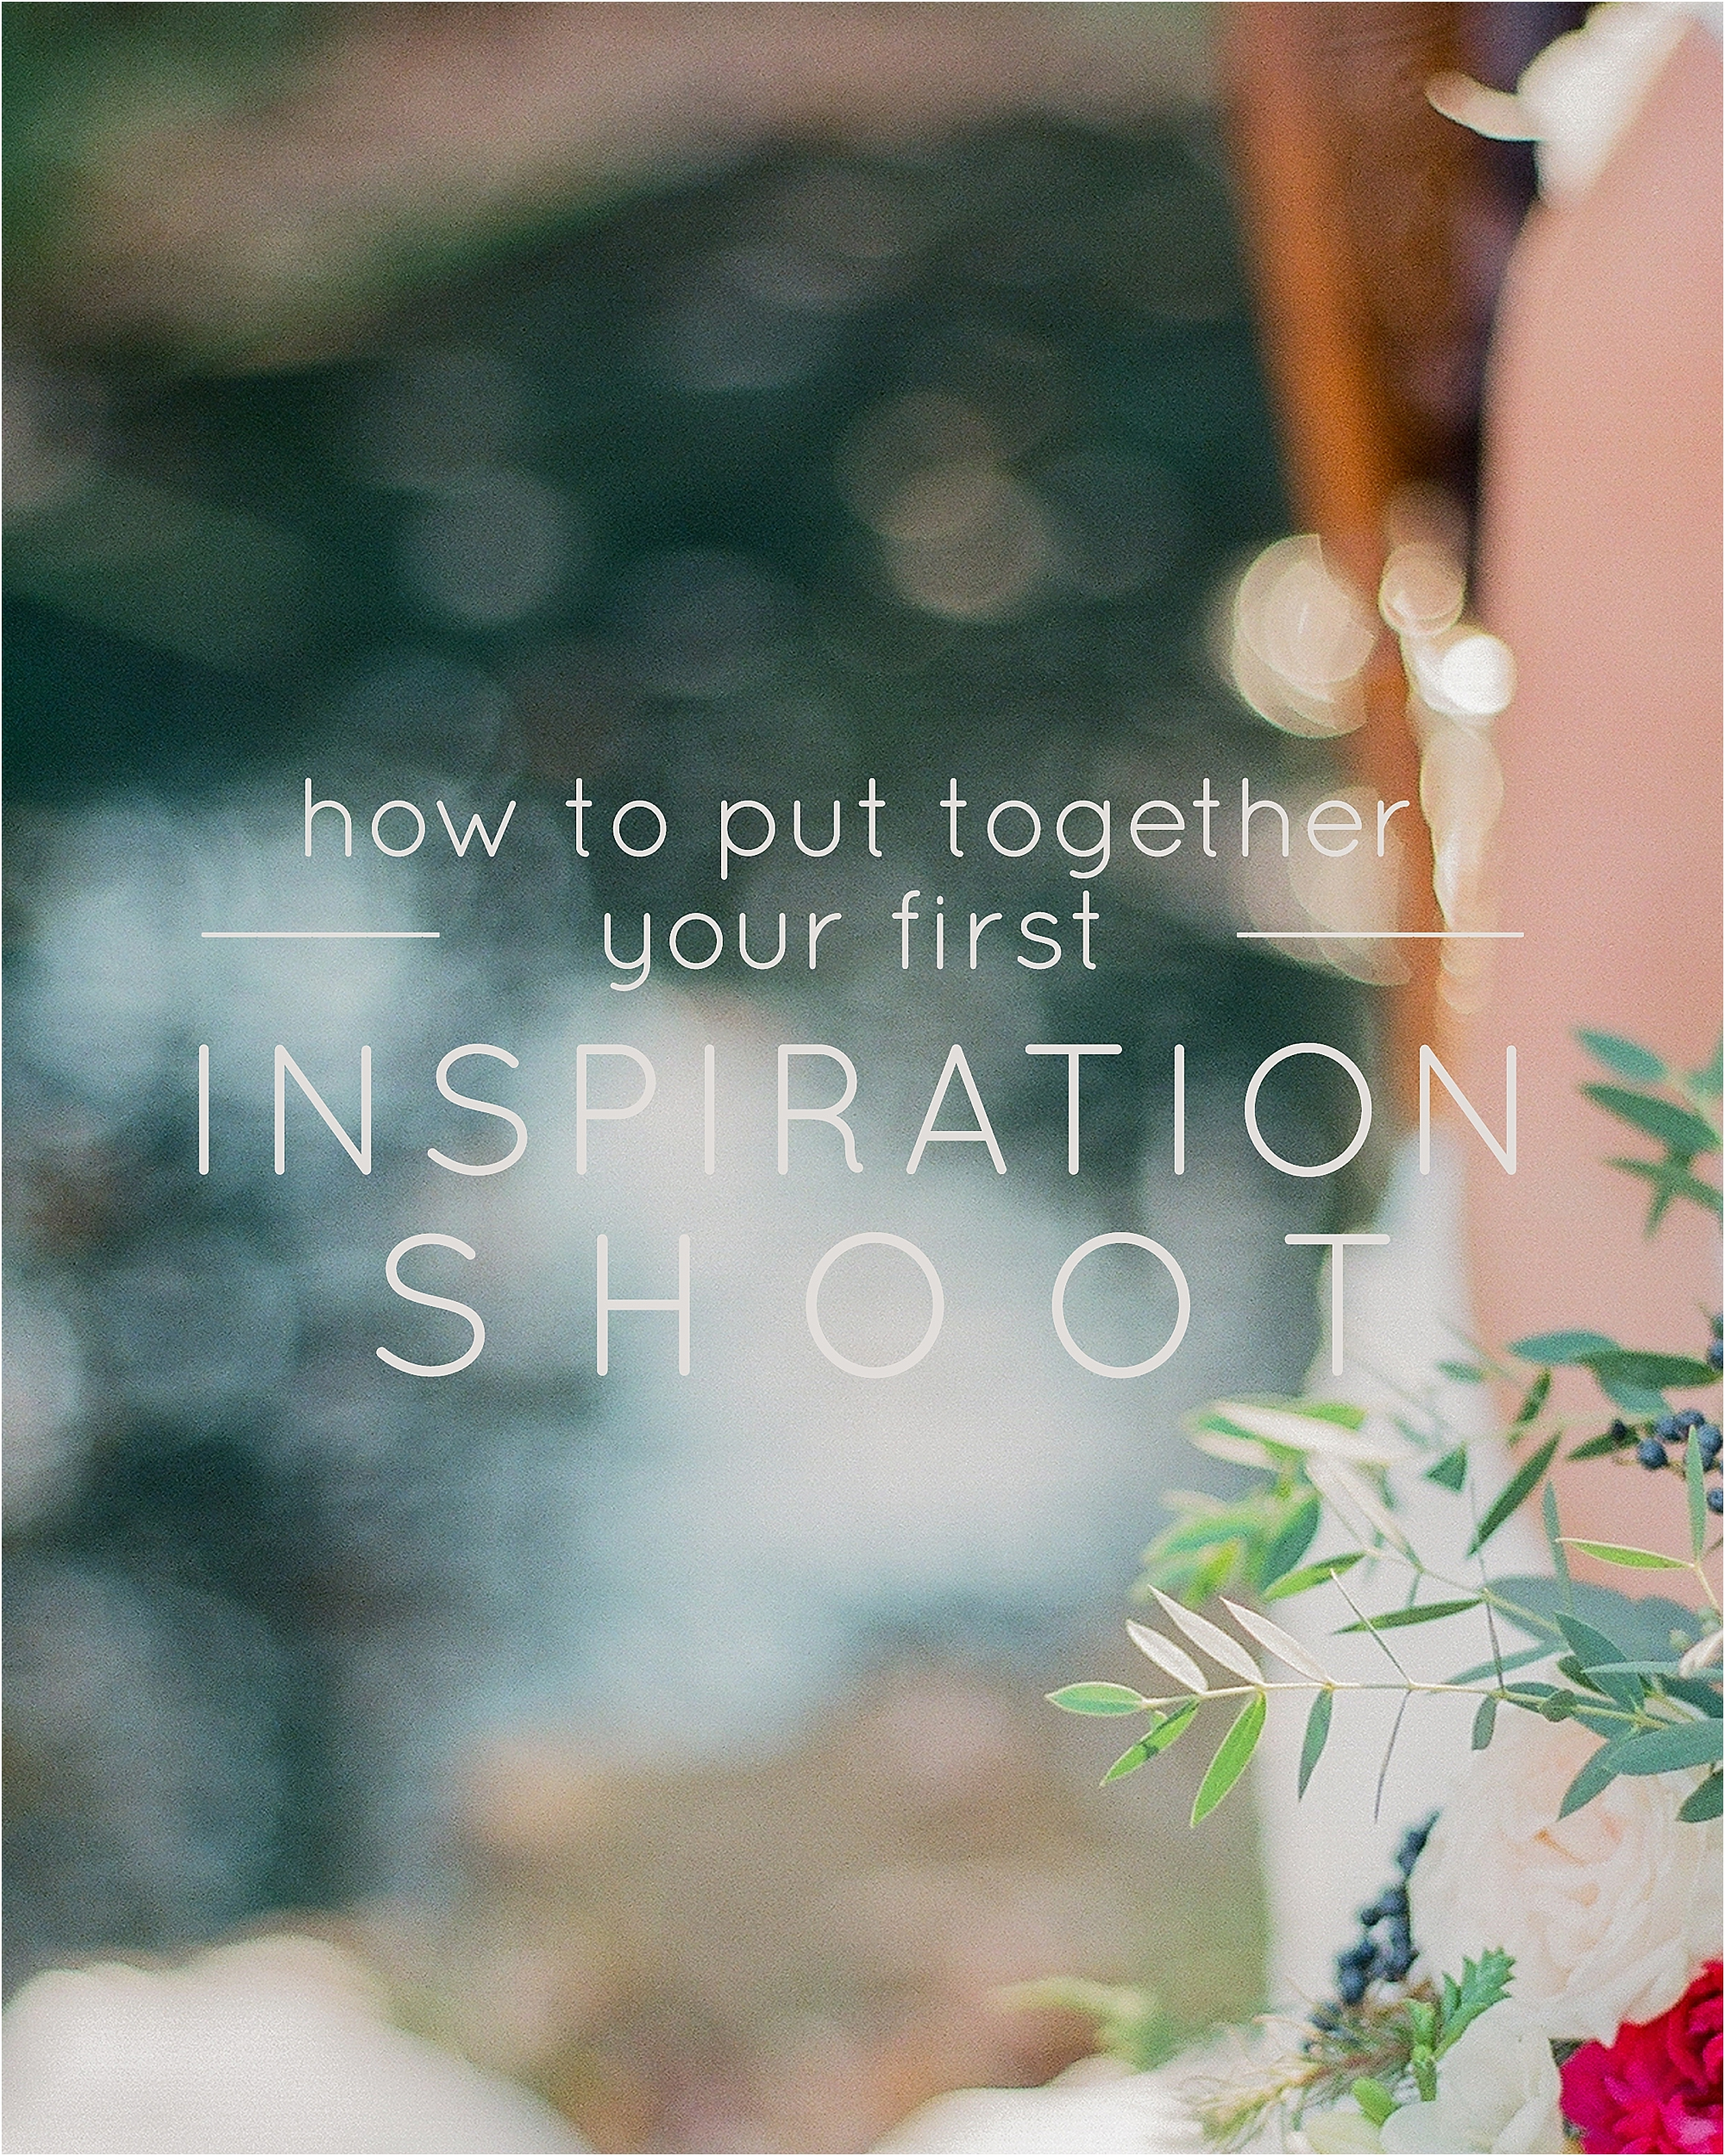 How To Put Together Your First Inspiration Shoot - The Jordan Brittley Blog